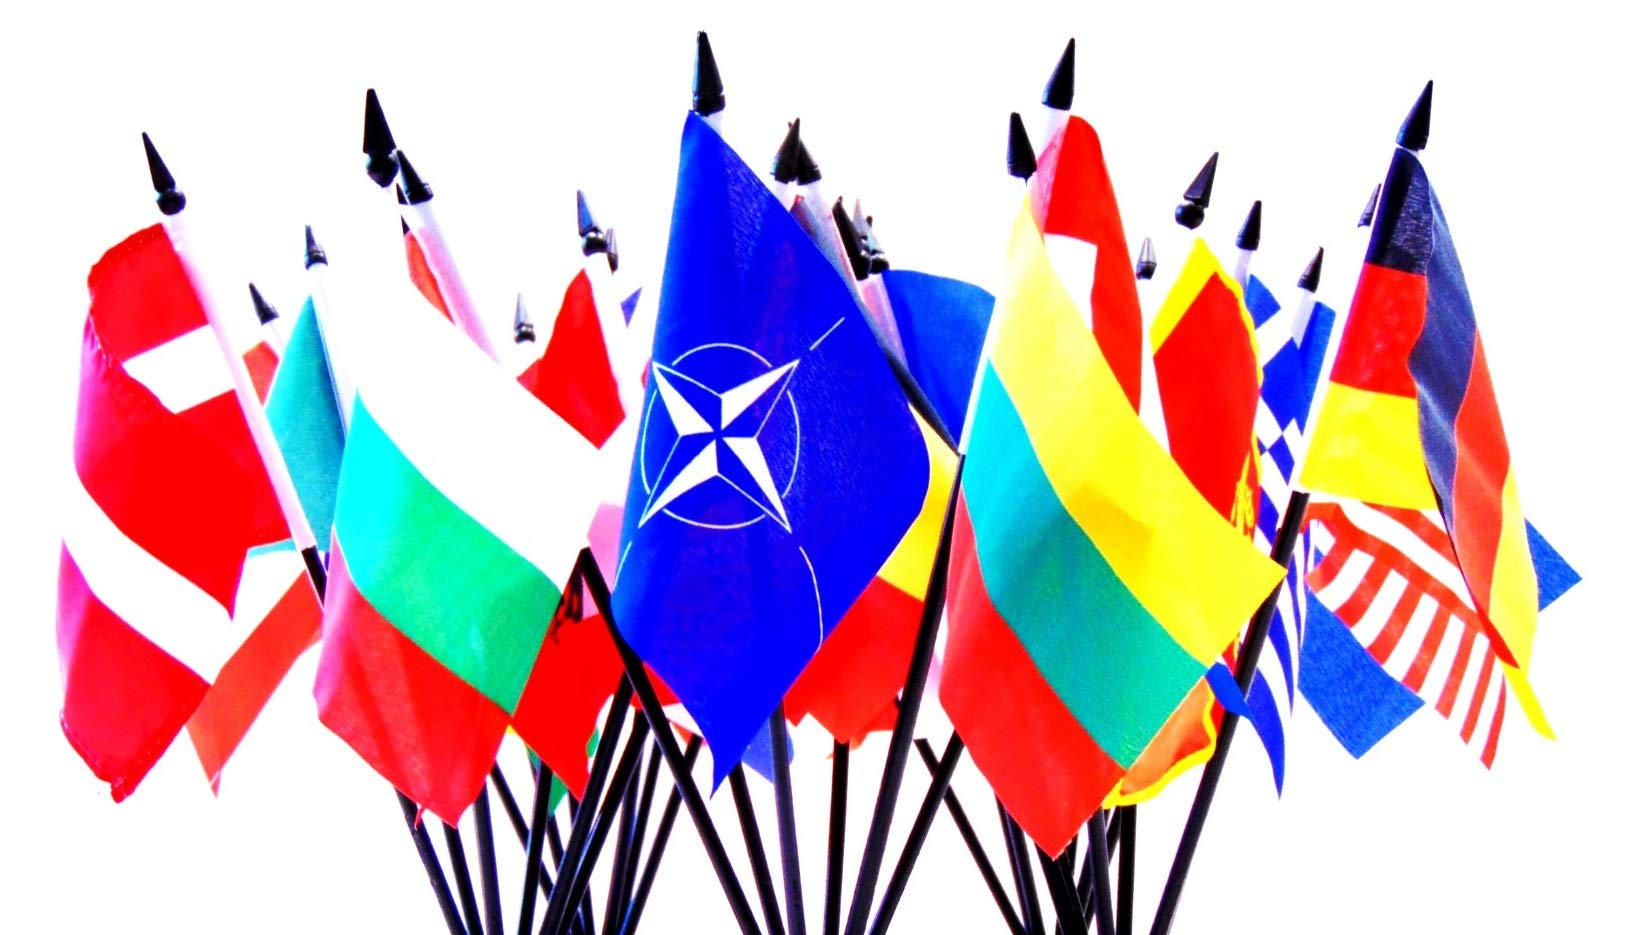 North Atlantic Treaty Organization (NATO) Flag SET-30 Polyester 4''x6'' Flags, One Flag for Each Country in NATO, 4x6 Miniature Desk & Table Flags, Small Mini Stick Flags